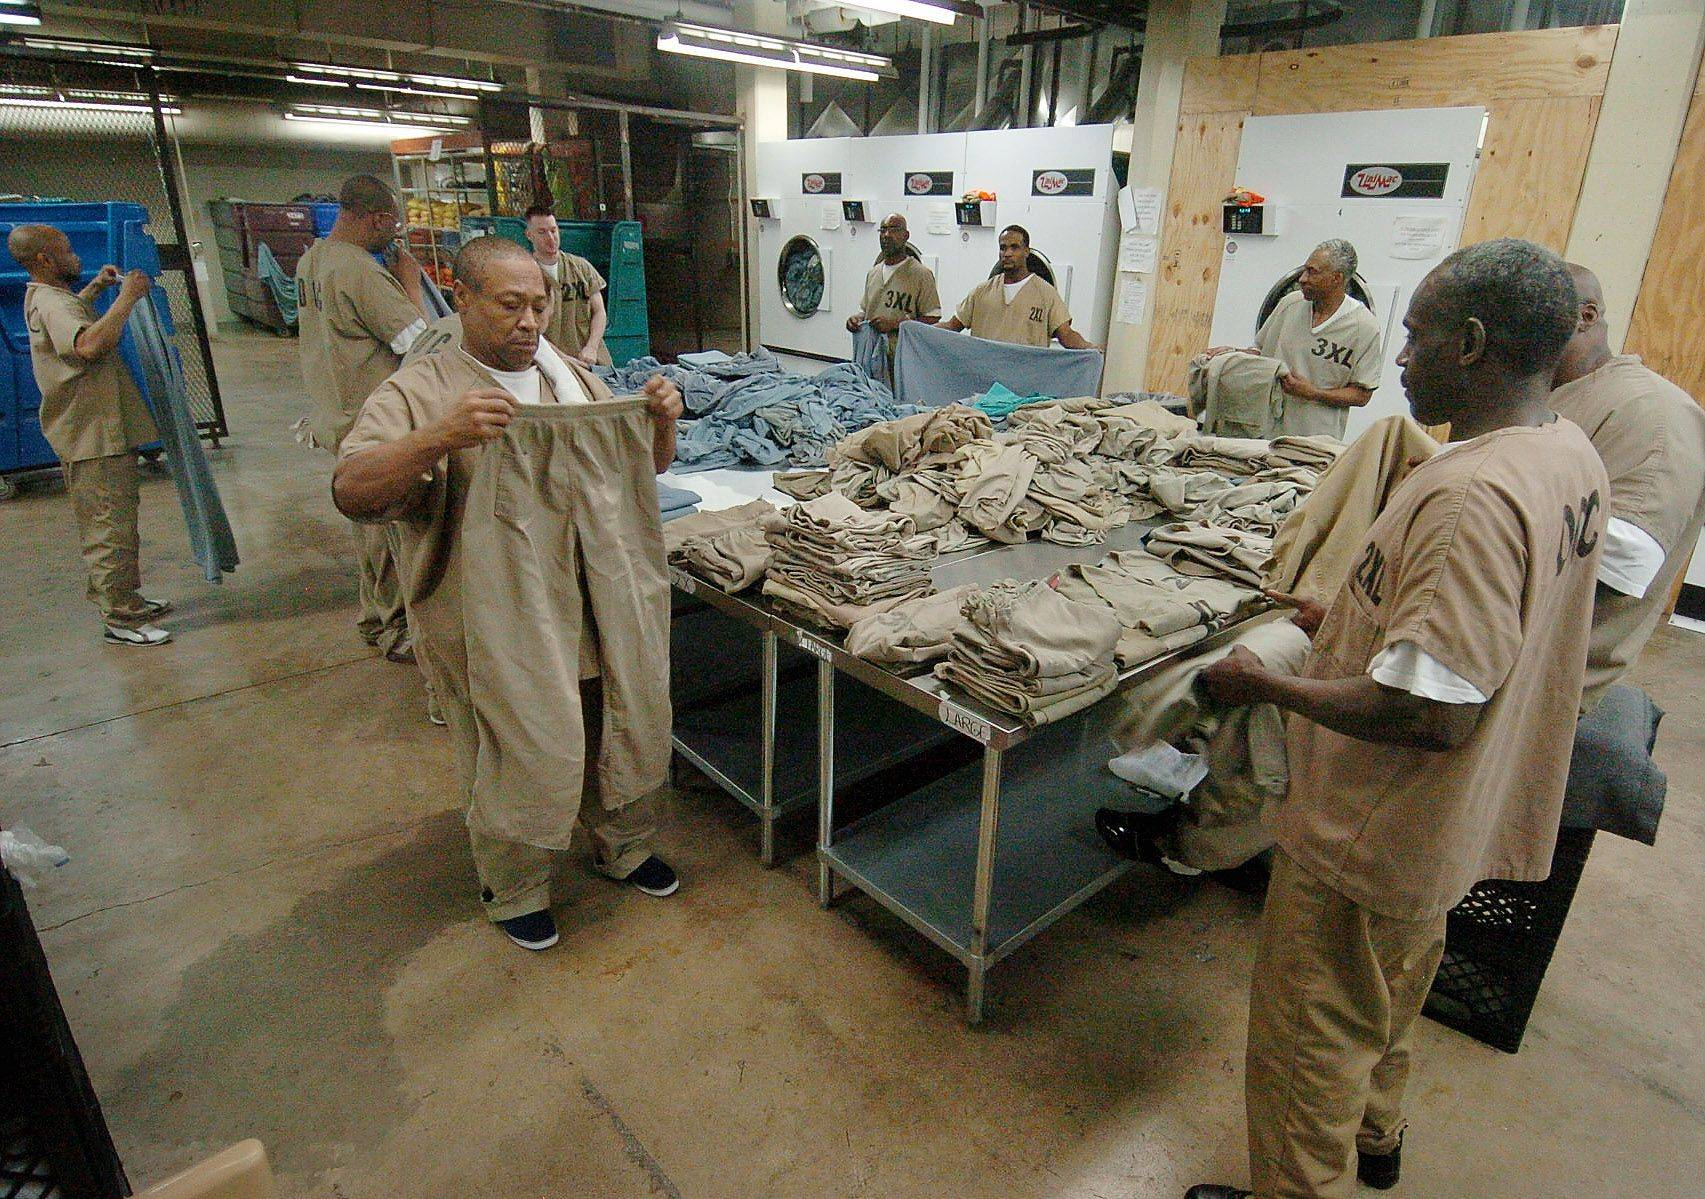 Low- to medium-risk military veterans work in the laundry room in the basement of Cook County Jail.